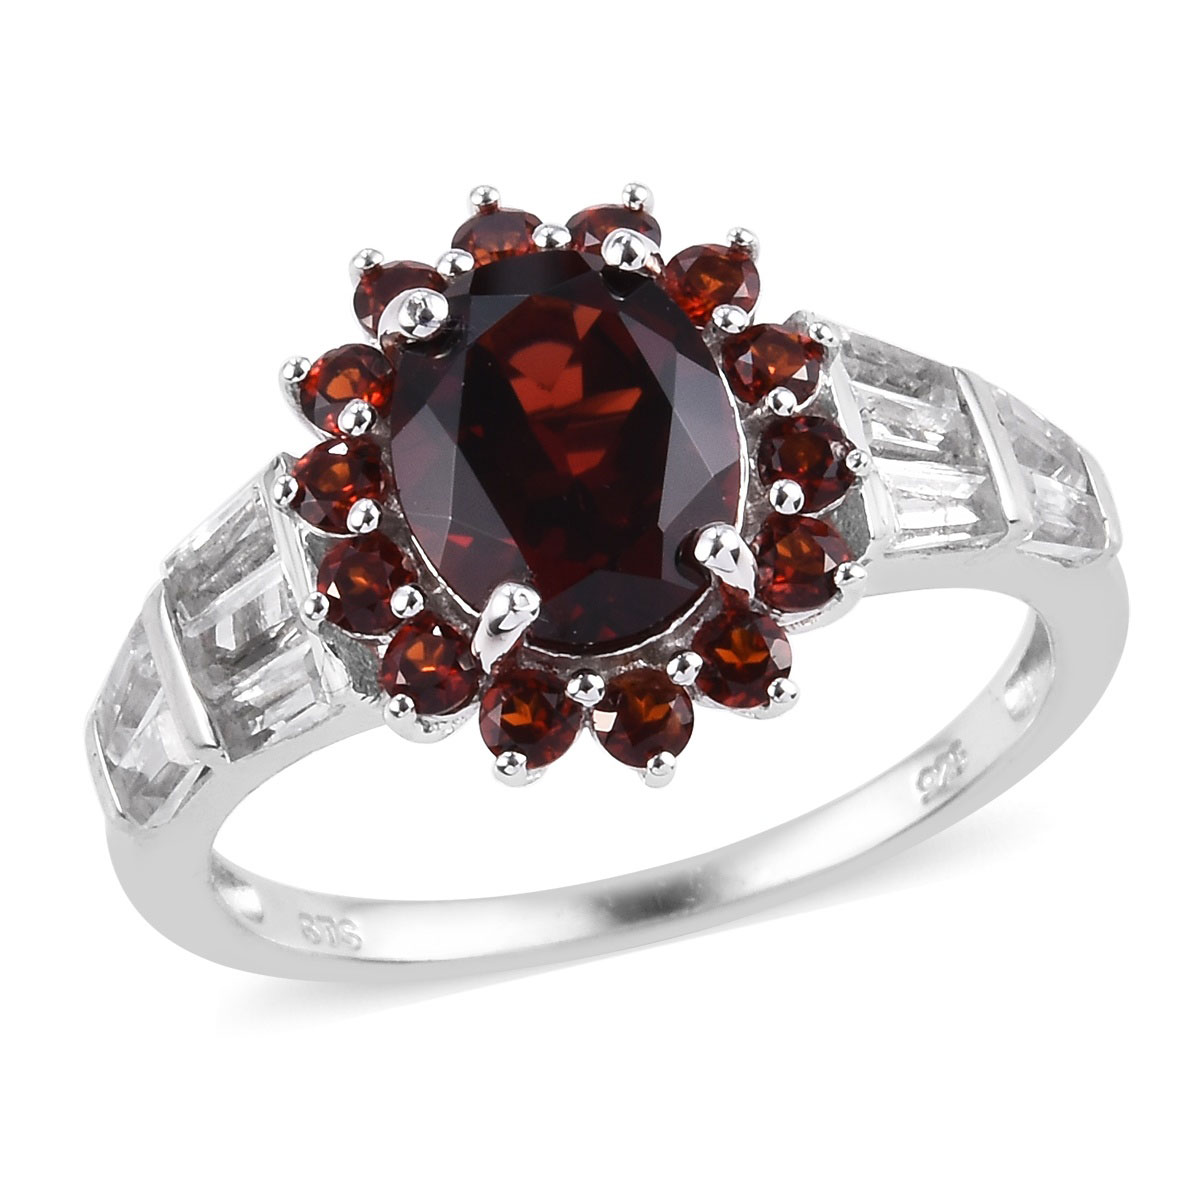 Mozambique Garnet, White Topaz Ring in Platinum Over Sterling Silver (Size  7 0) 5 15 ctw